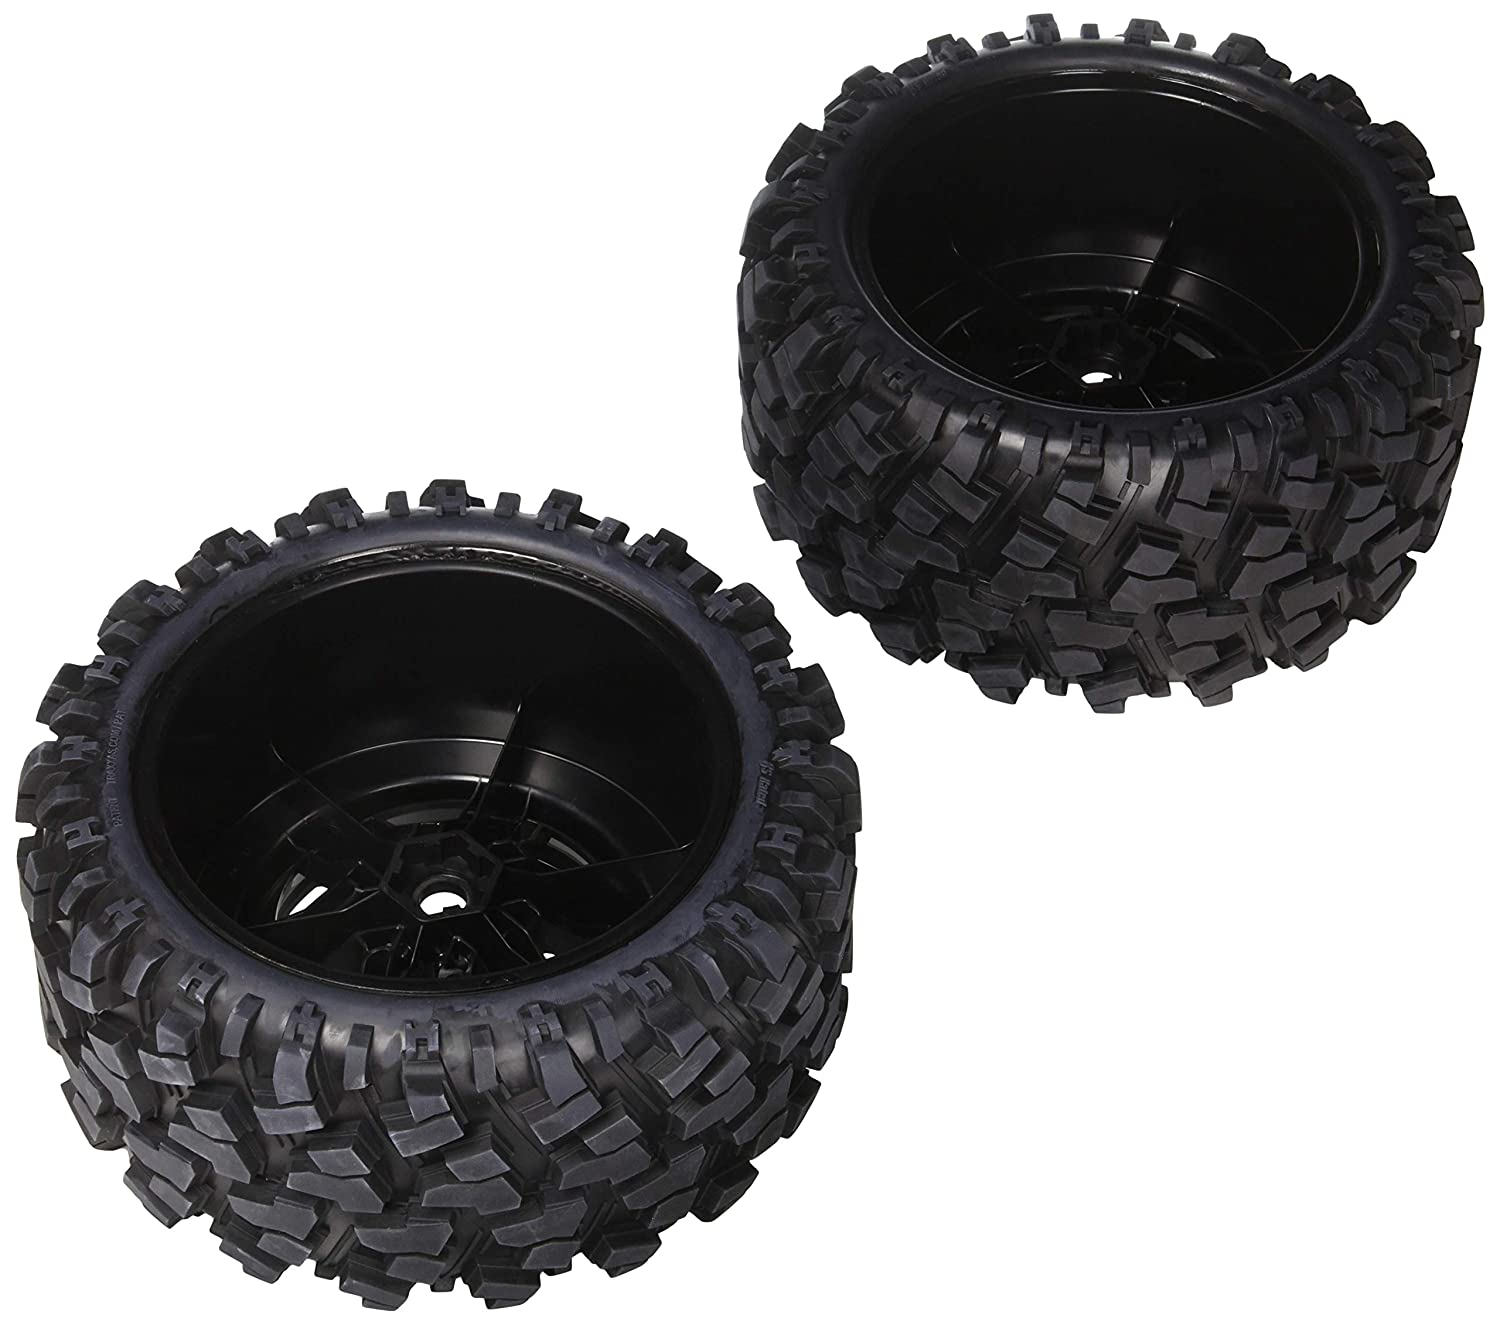 8S-Rated Vehicle Traxxas 7772X Pre-Assembled X-Maxx Wheels /& Tires